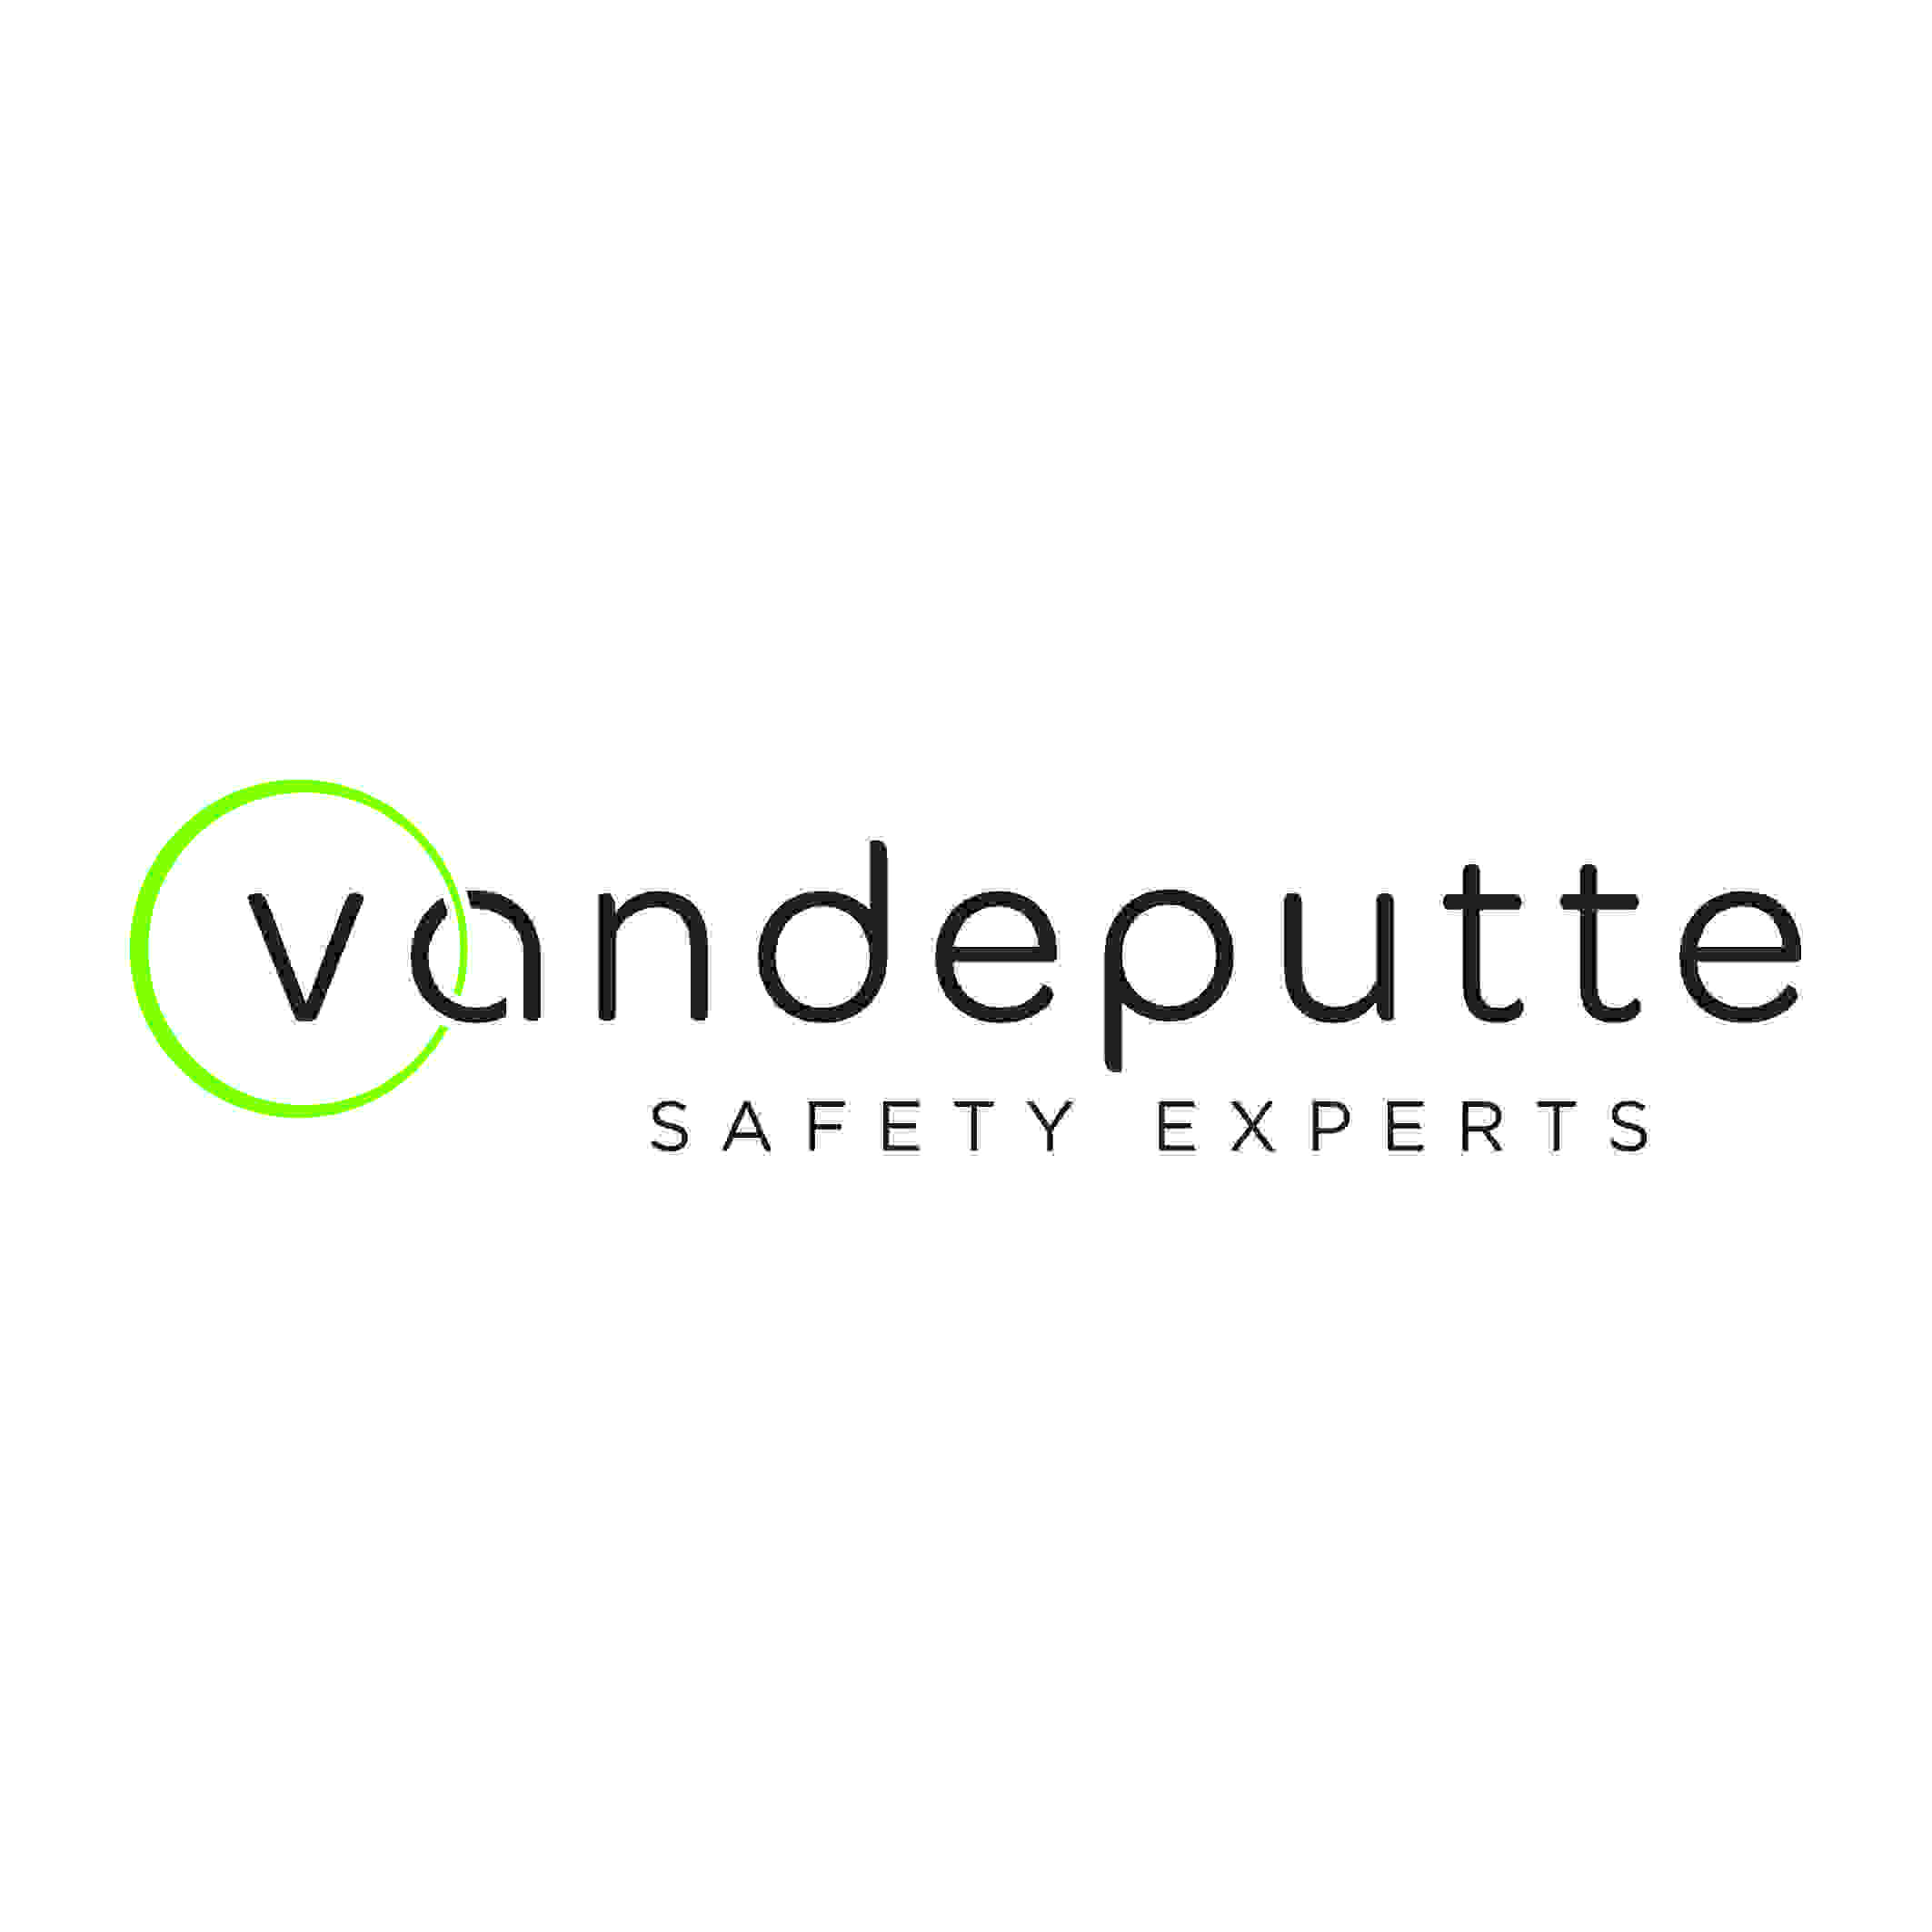 Vandeputte - Safety Experts